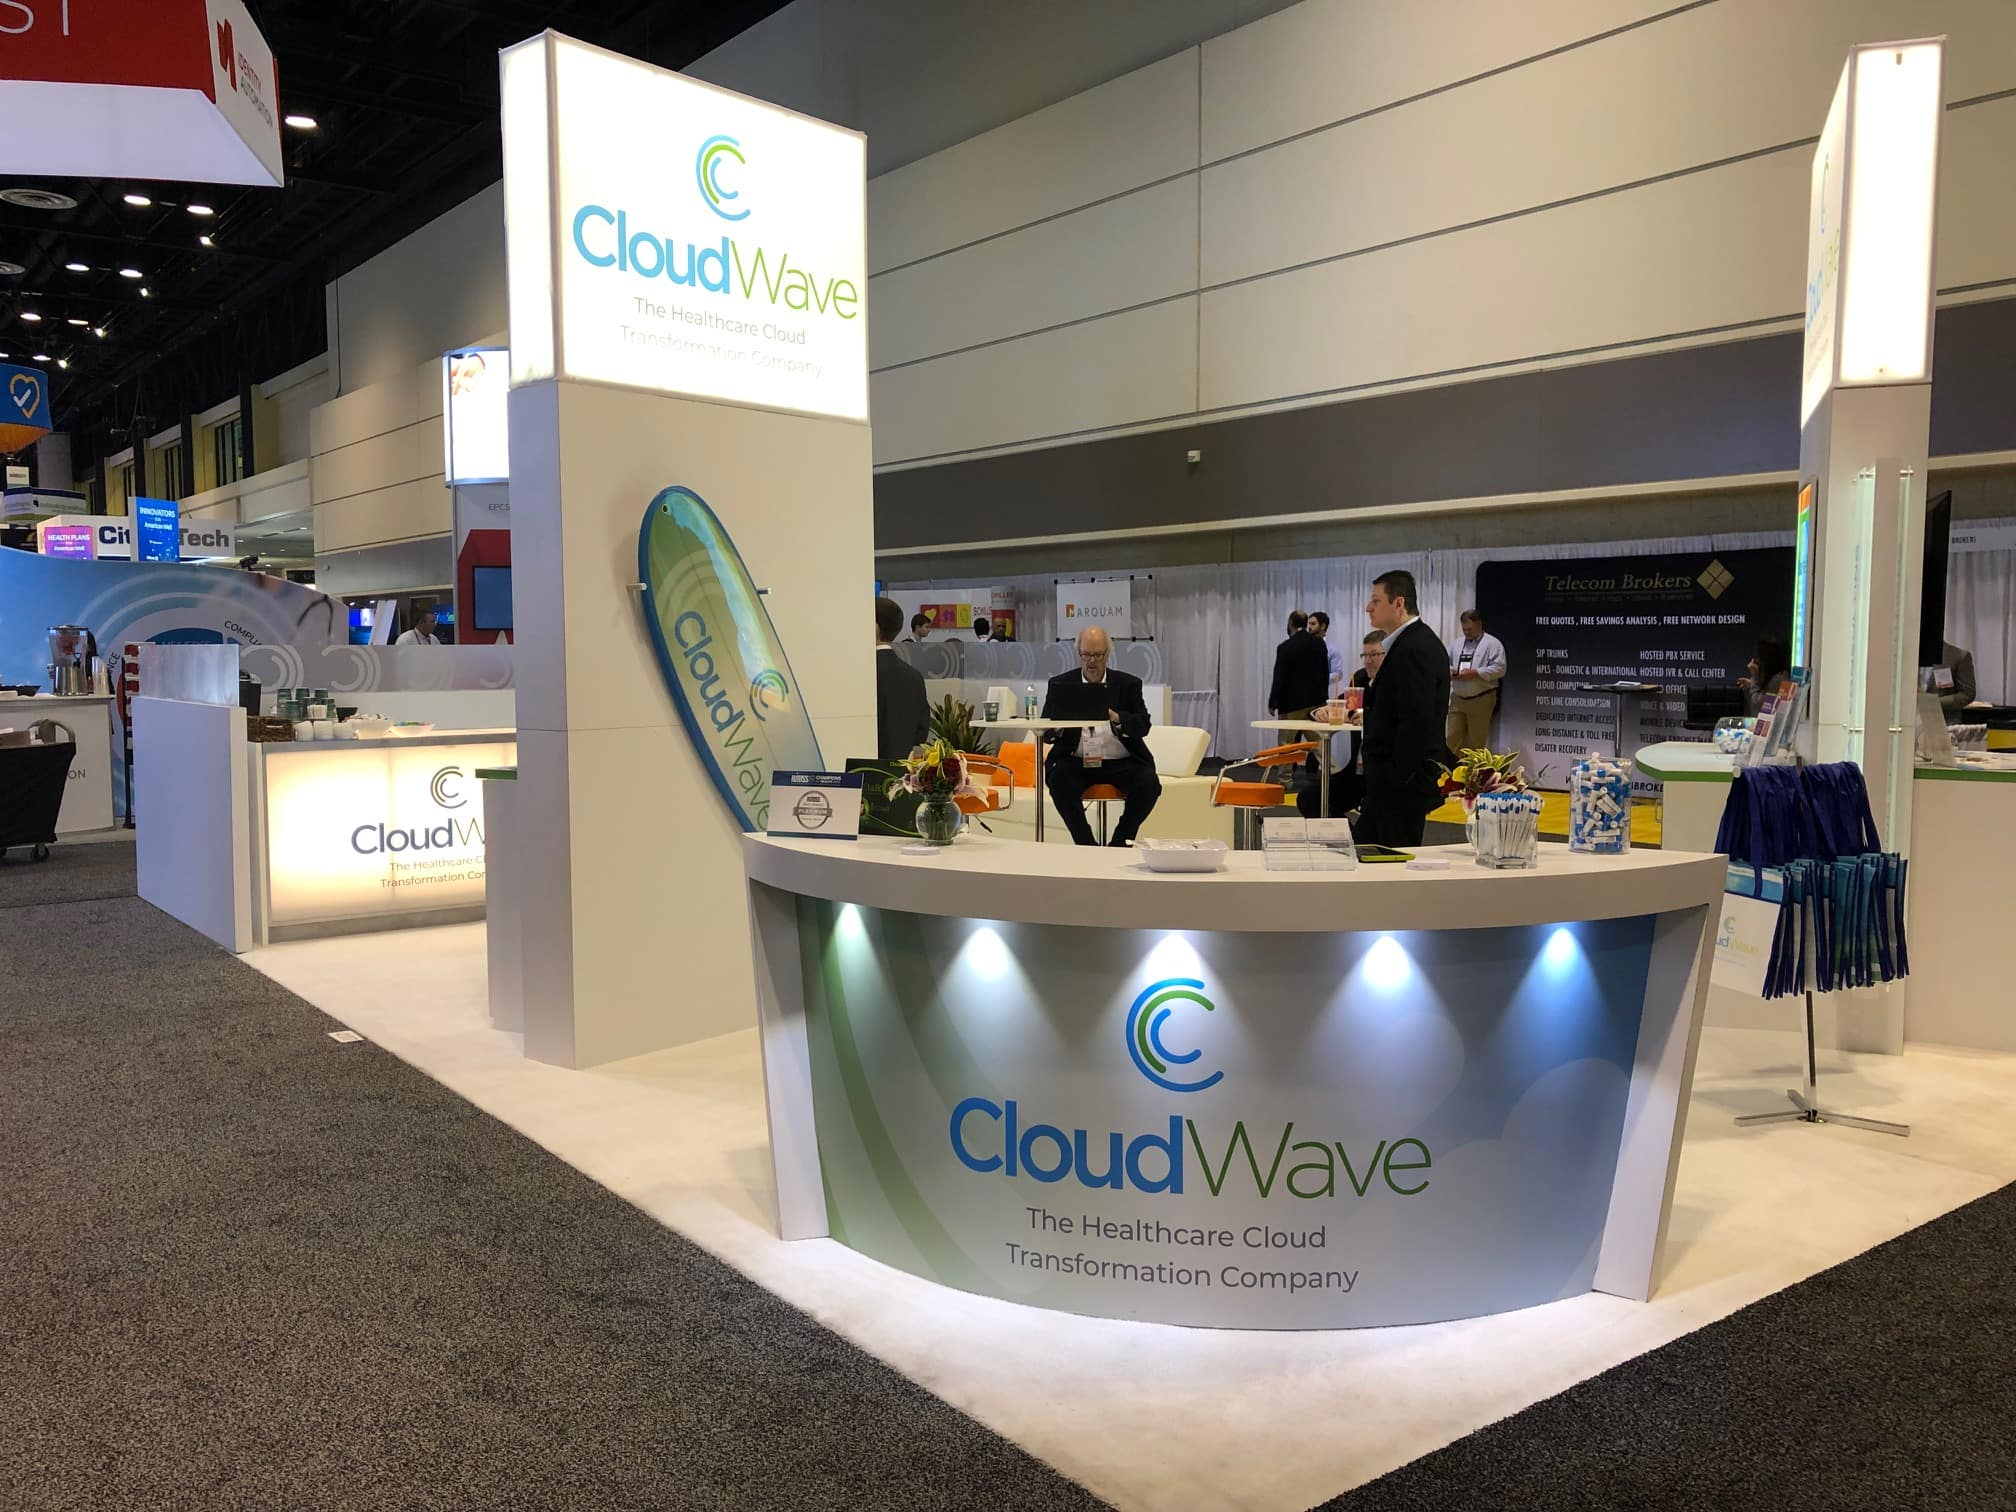 https://gocloudwave.com/wp-content/uploads/2019/07/HIMSS19-min.jpg